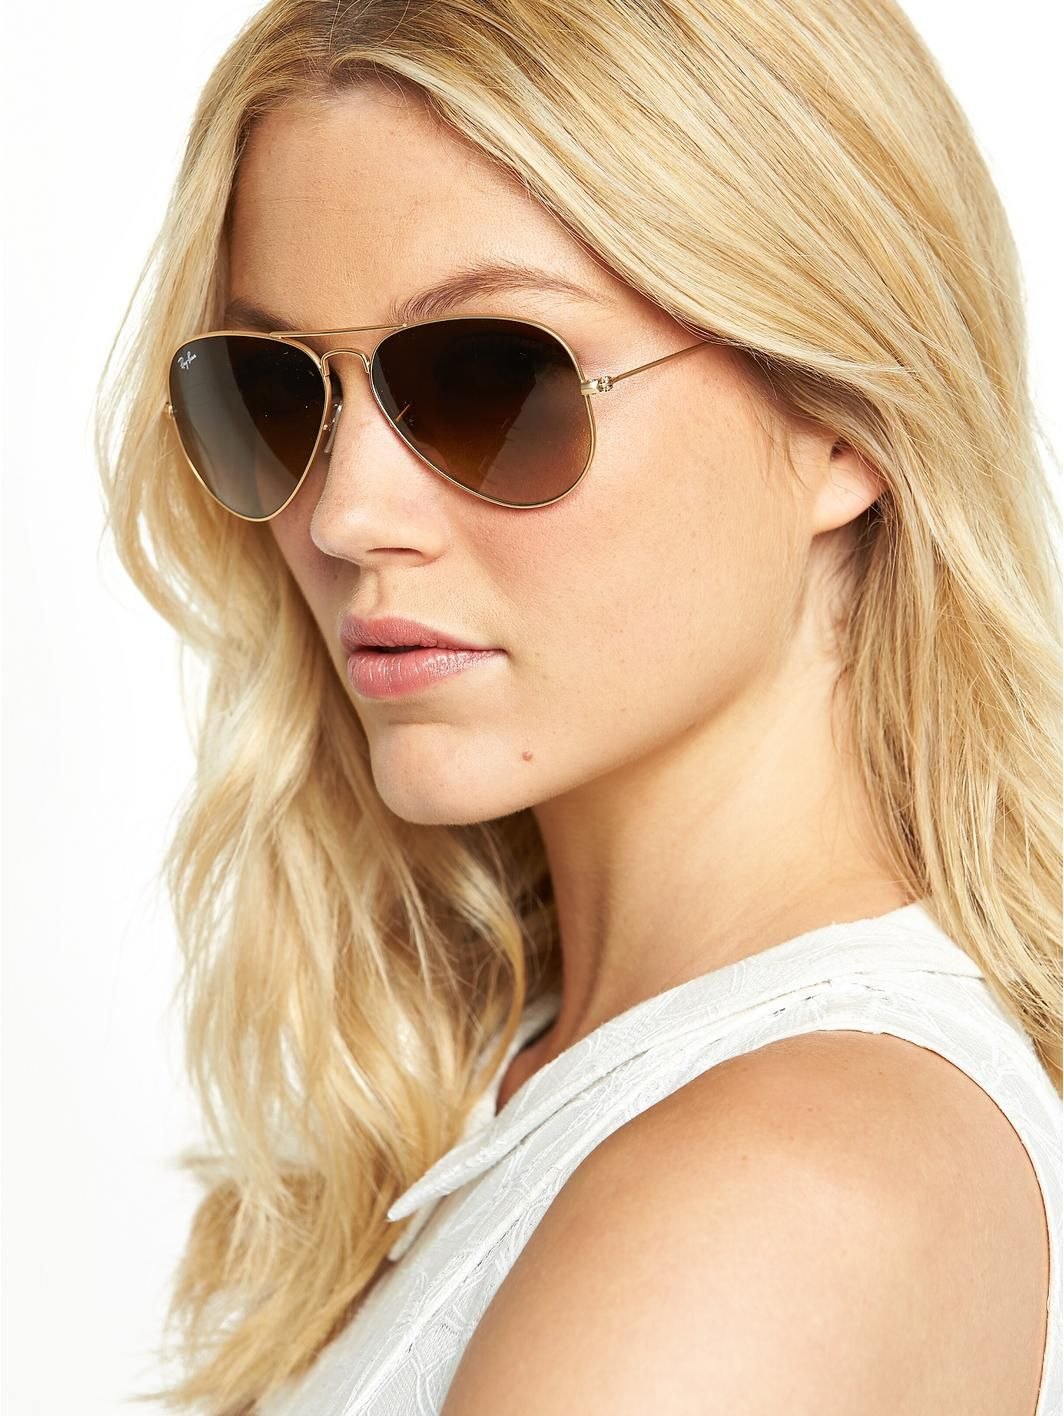 The Best Sunglasses for Women of the Season | Haute & Humid